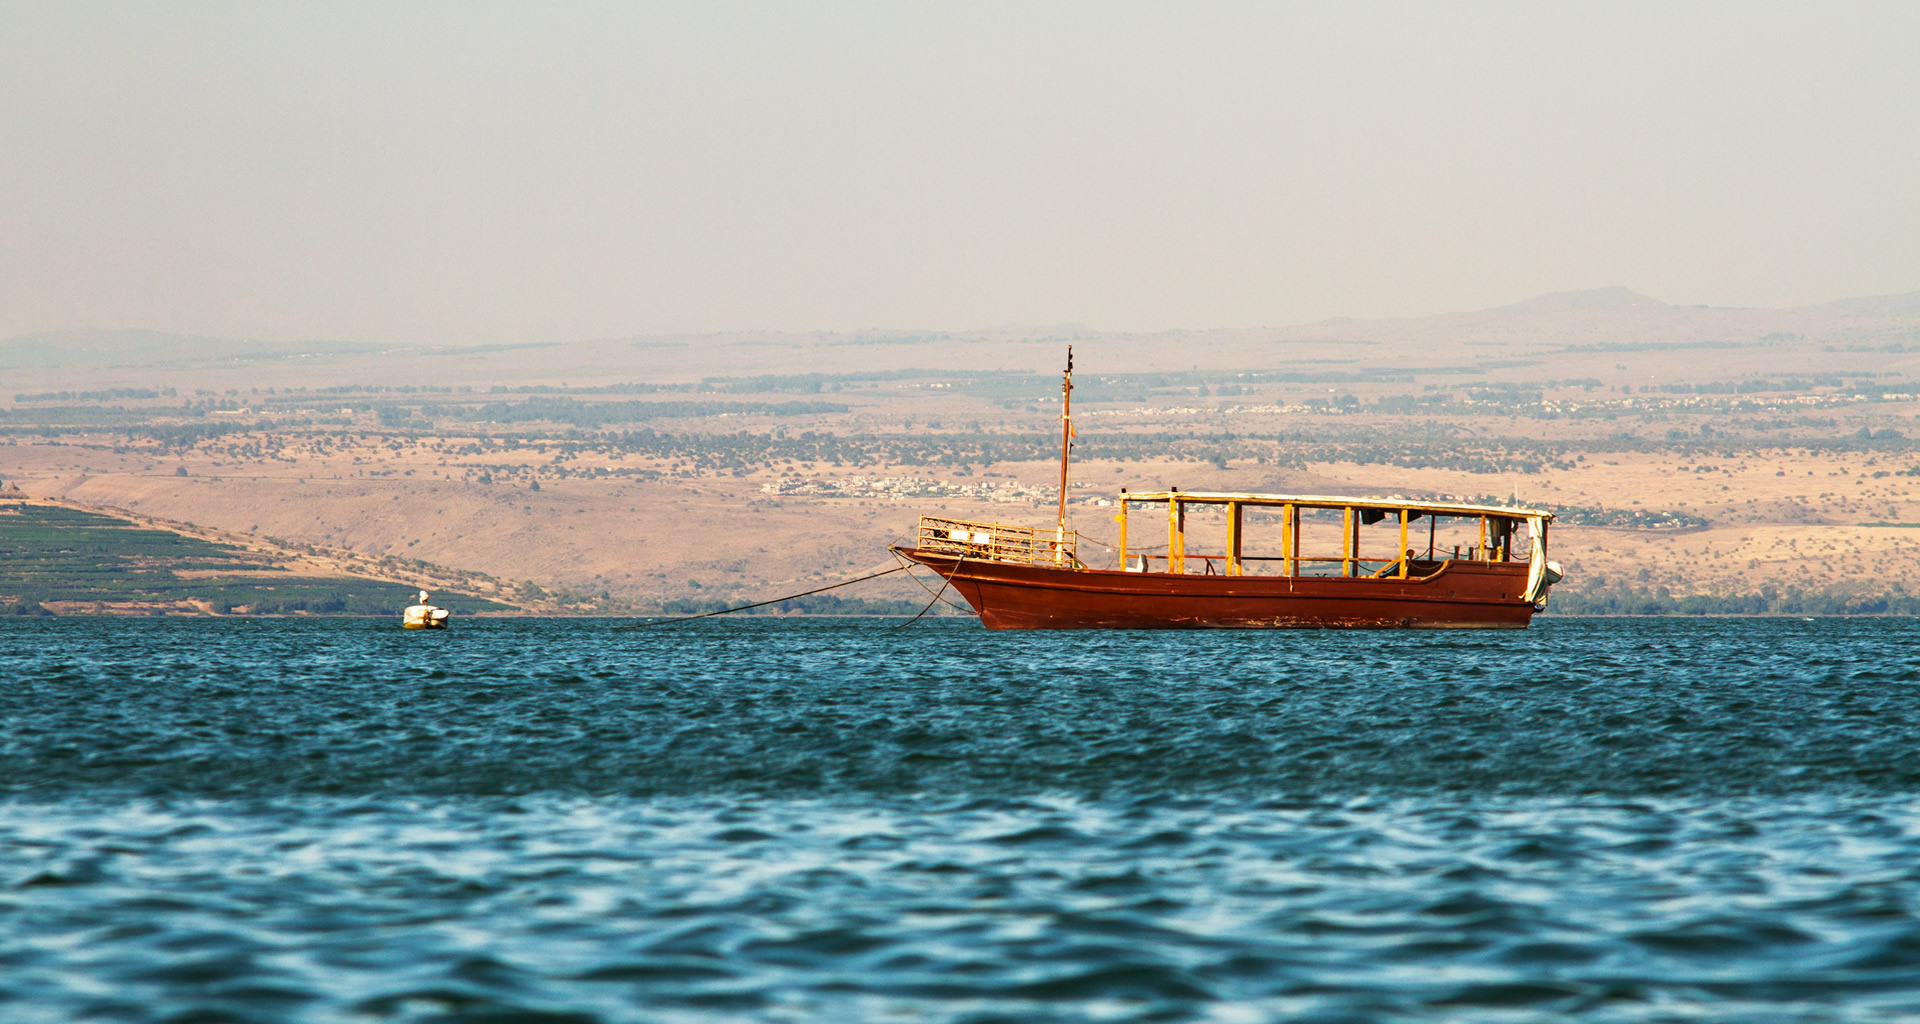 Part 4 - Sea of Galilee